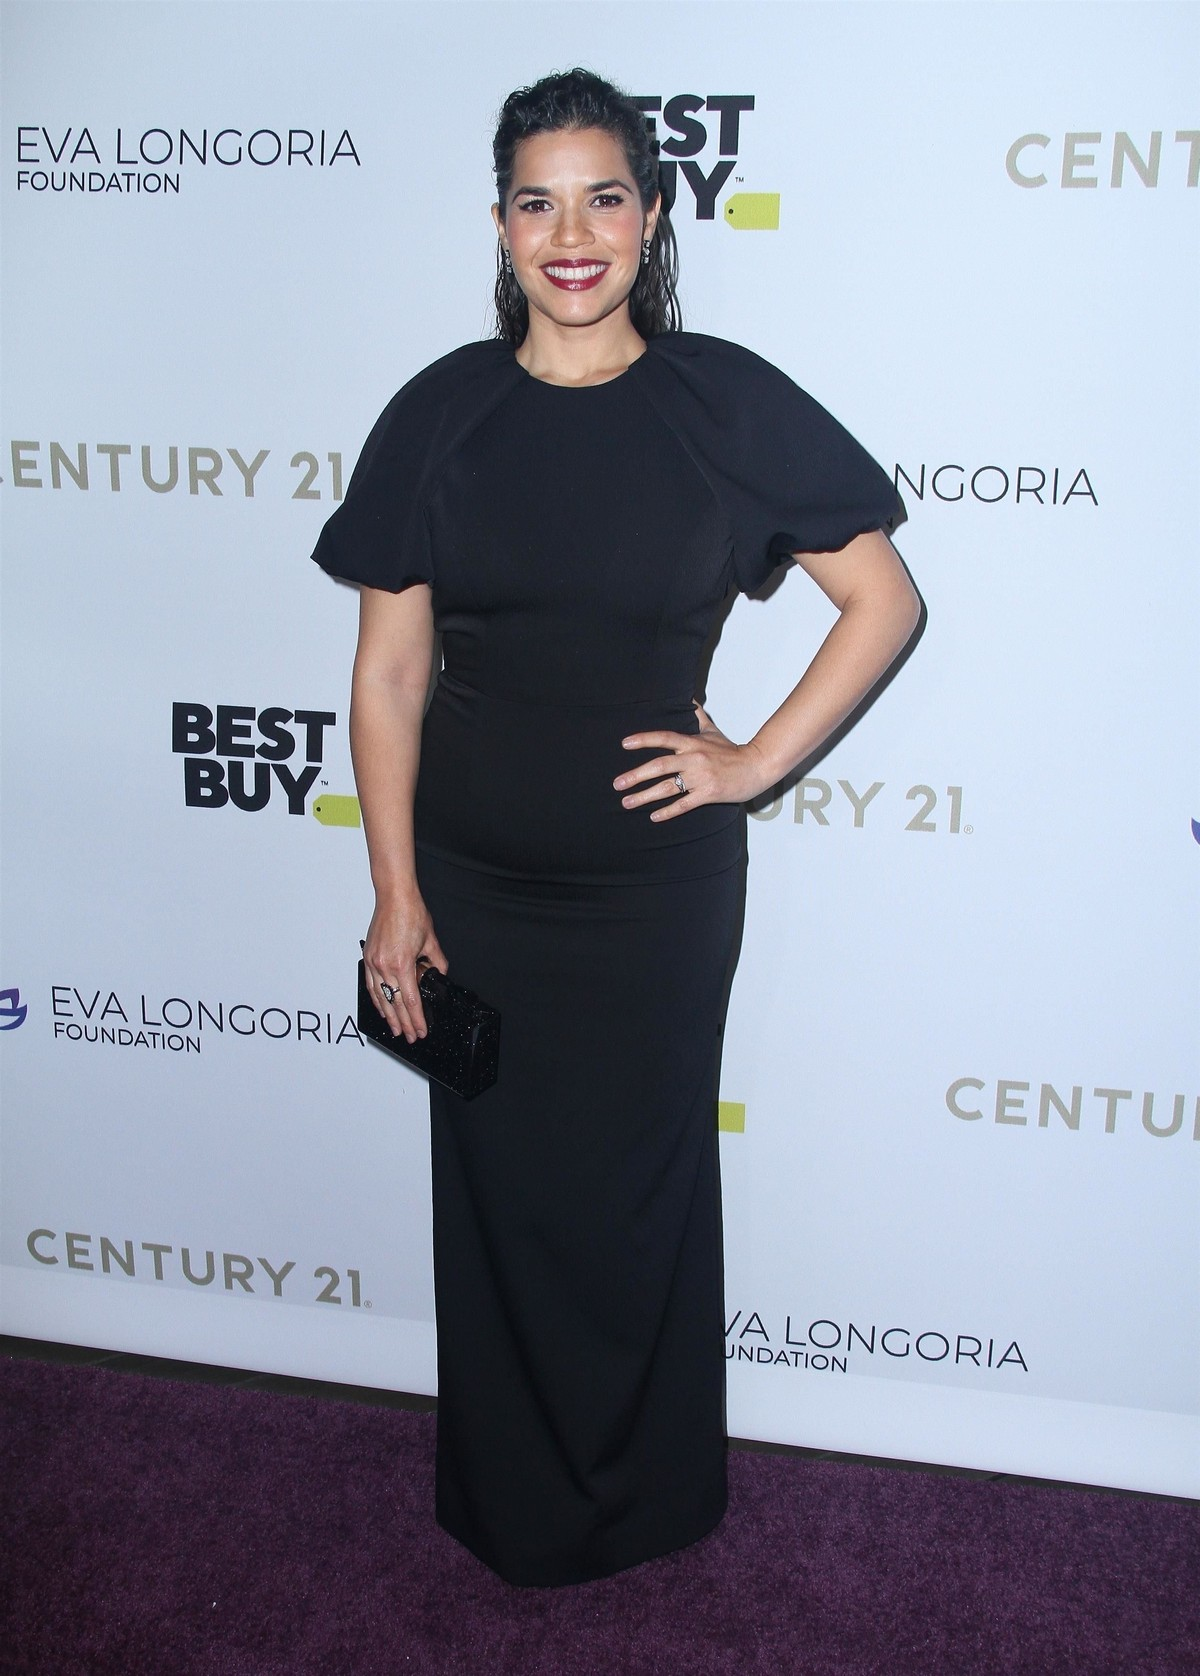 America Ferrera attends The Eva Longoria Foundation Gala at the Four Seasons in Los Angeles 2019/11/15 3